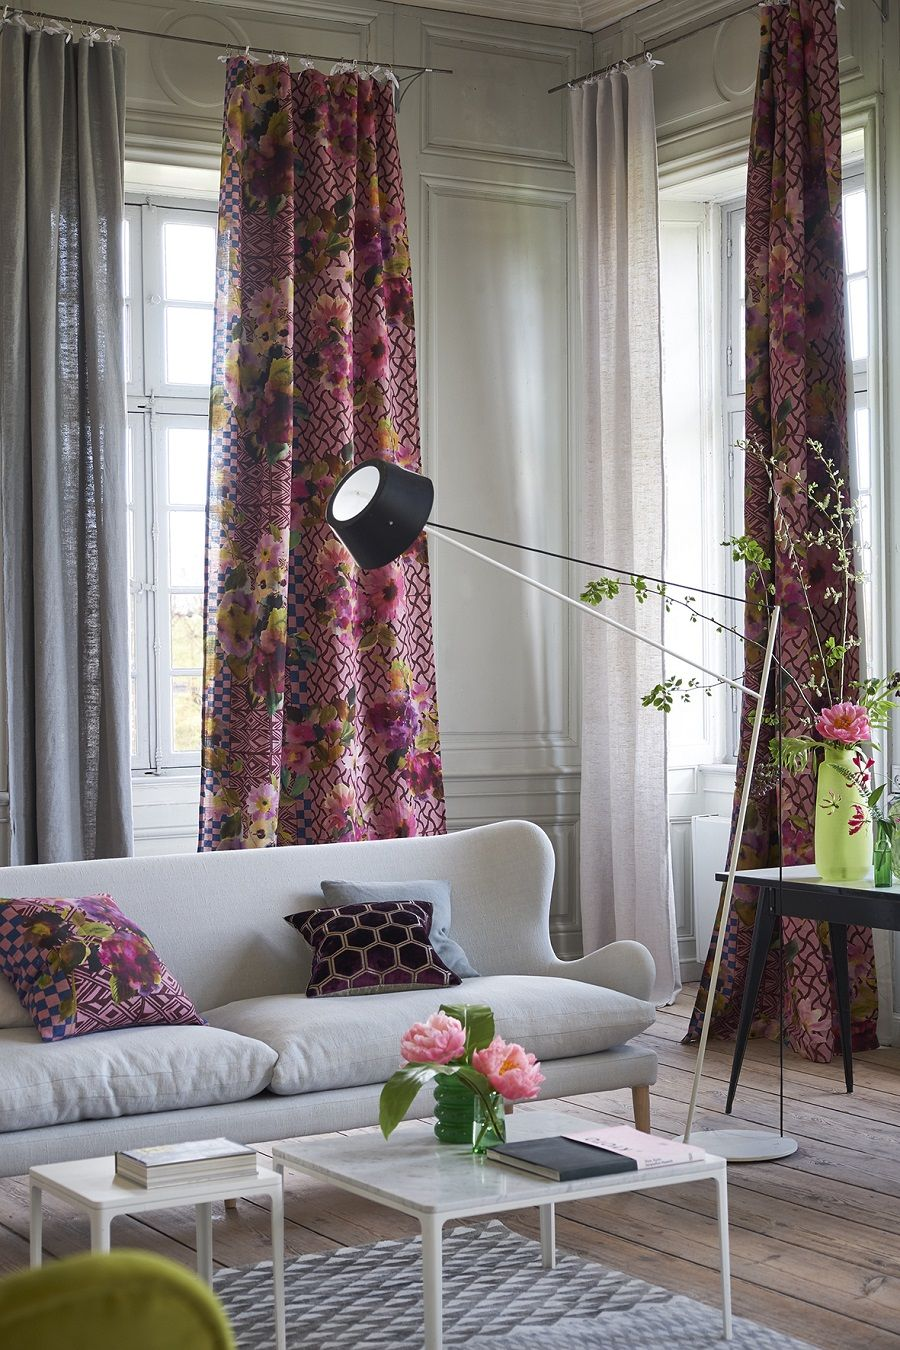 The new jaipur collection of fabrics from designers guild and